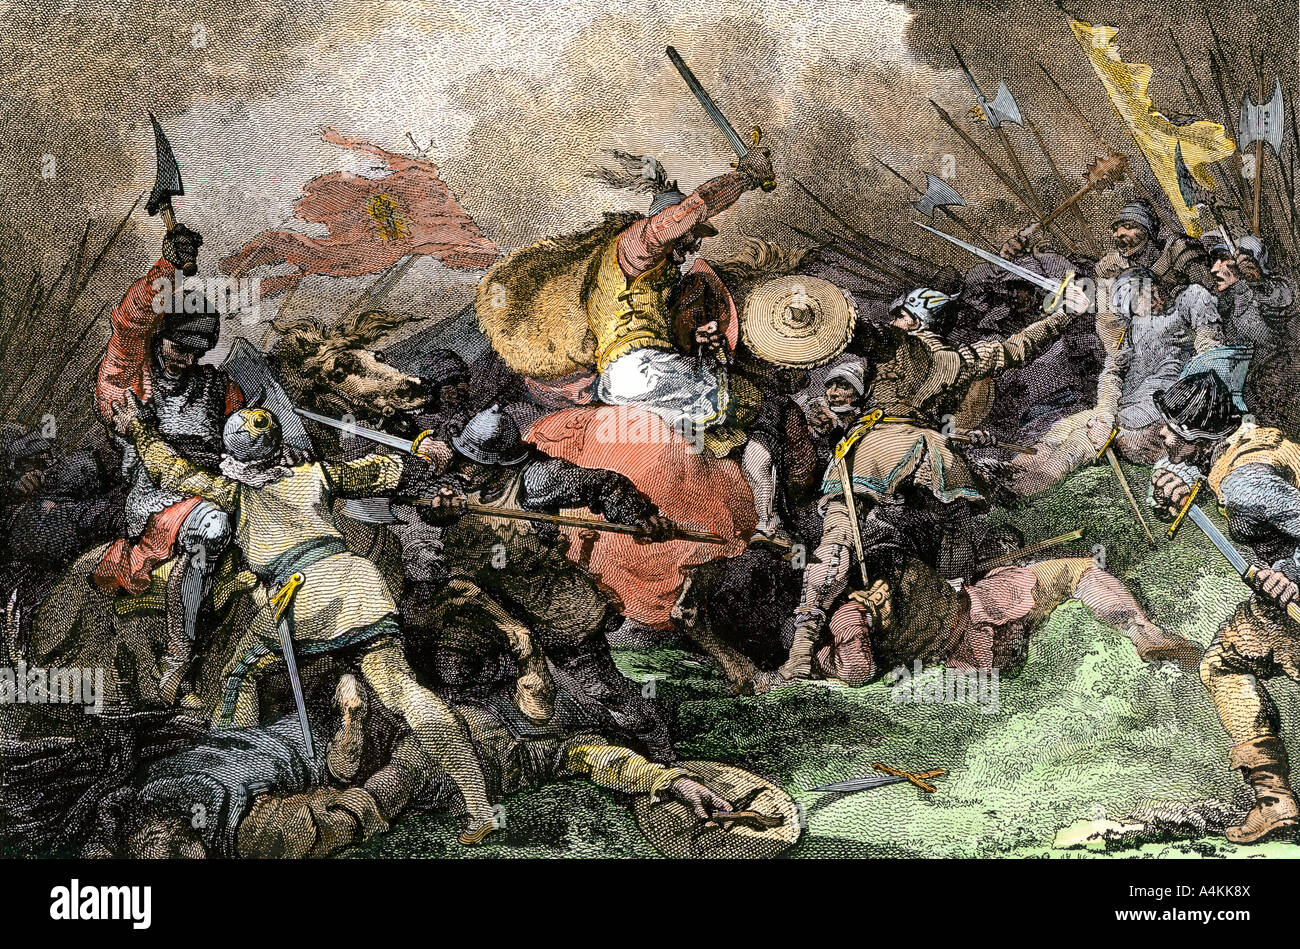 Saxons defeated by William the Conqueror at the Battle of Hastings 1066. Hand-colored engraving - Stock Image